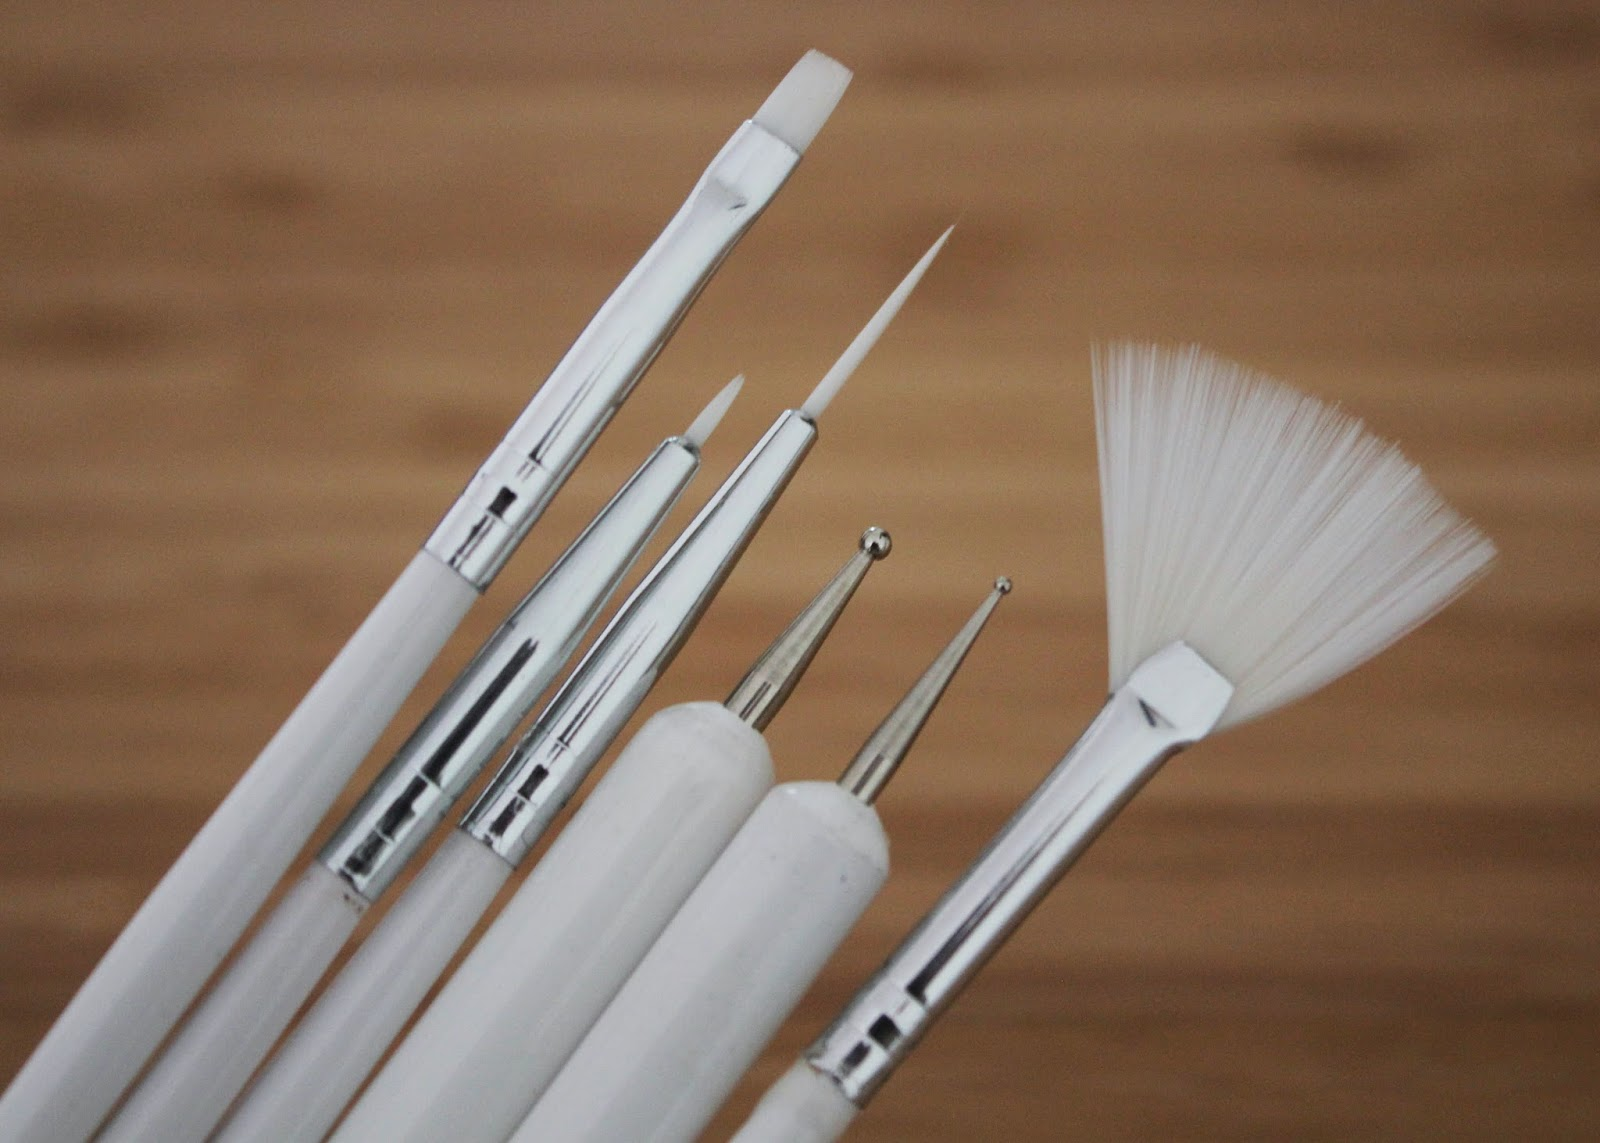 Review Of Artist Design : Fundamentally flawless models own nail art tool kit review